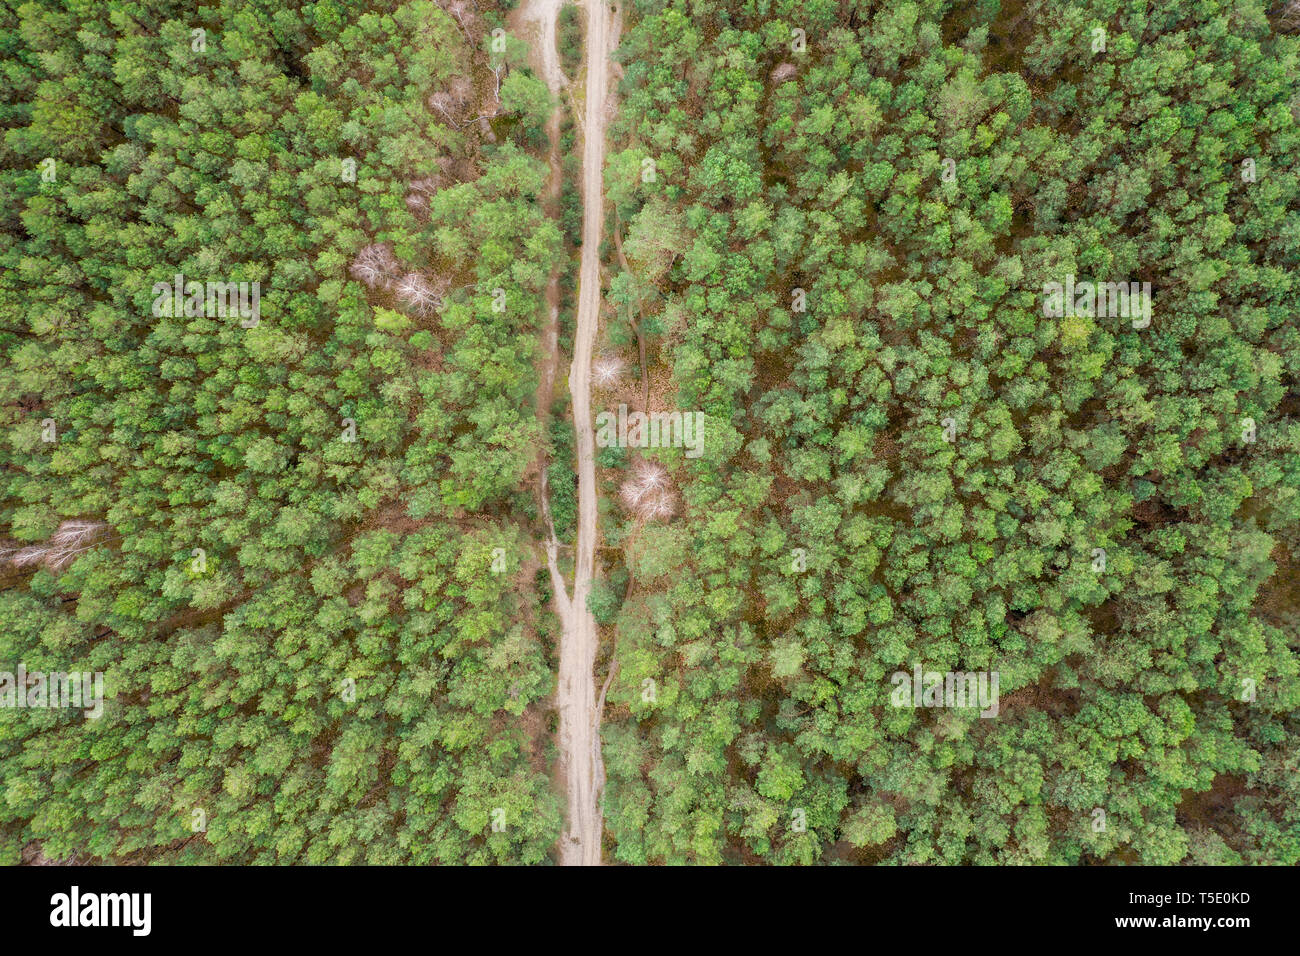 Aerial top view forest, Texture of forest view from above. Road in the middle Stock Photo